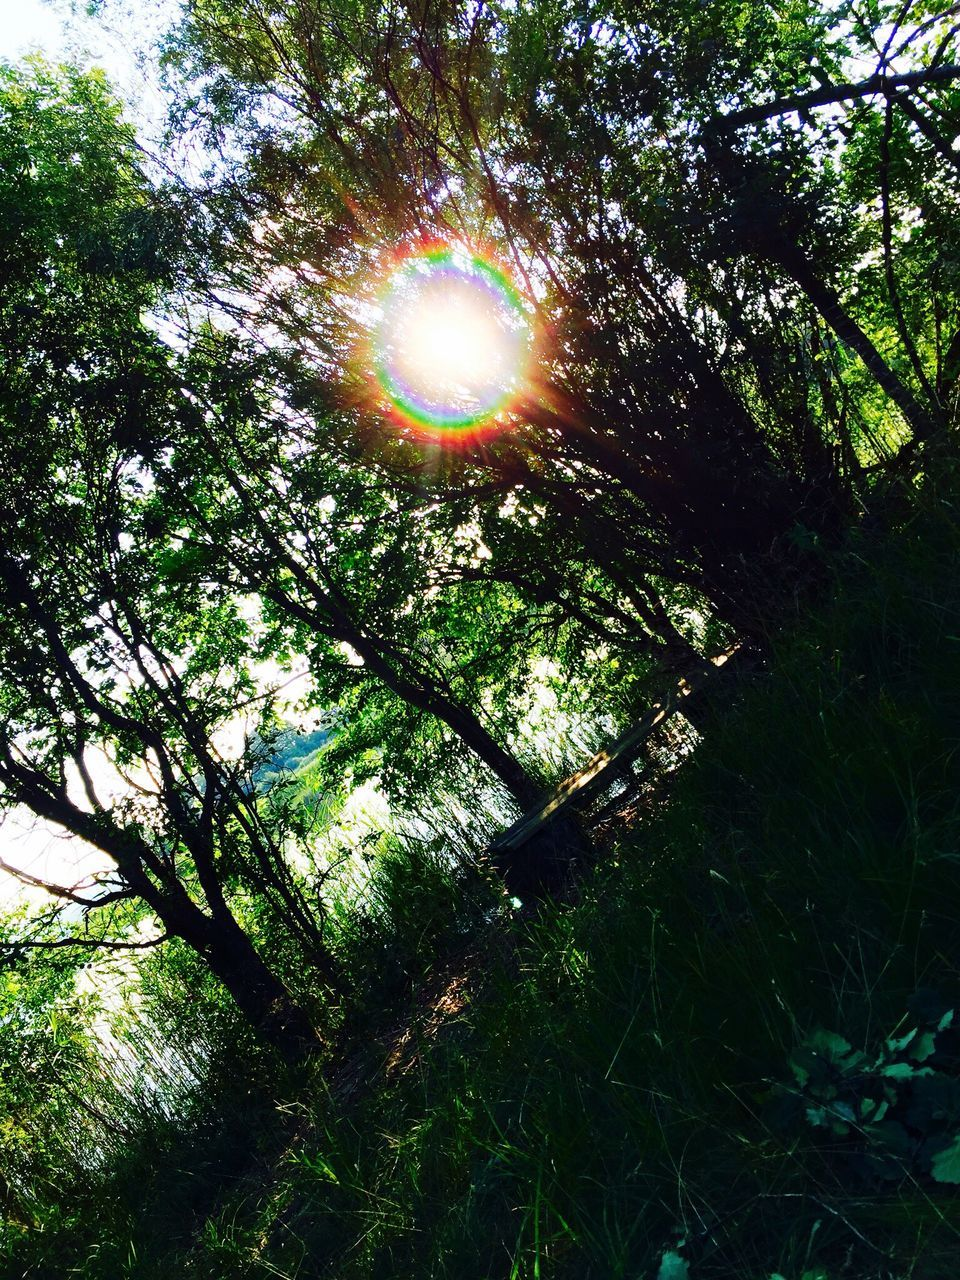 tree, nature, sun, beauty in nature, growth, low angle view, lens flare, sunbeam, tranquility, sunlight, tranquil scene, no people, green color, branch, scenics, outdoors, day, sky, refraction